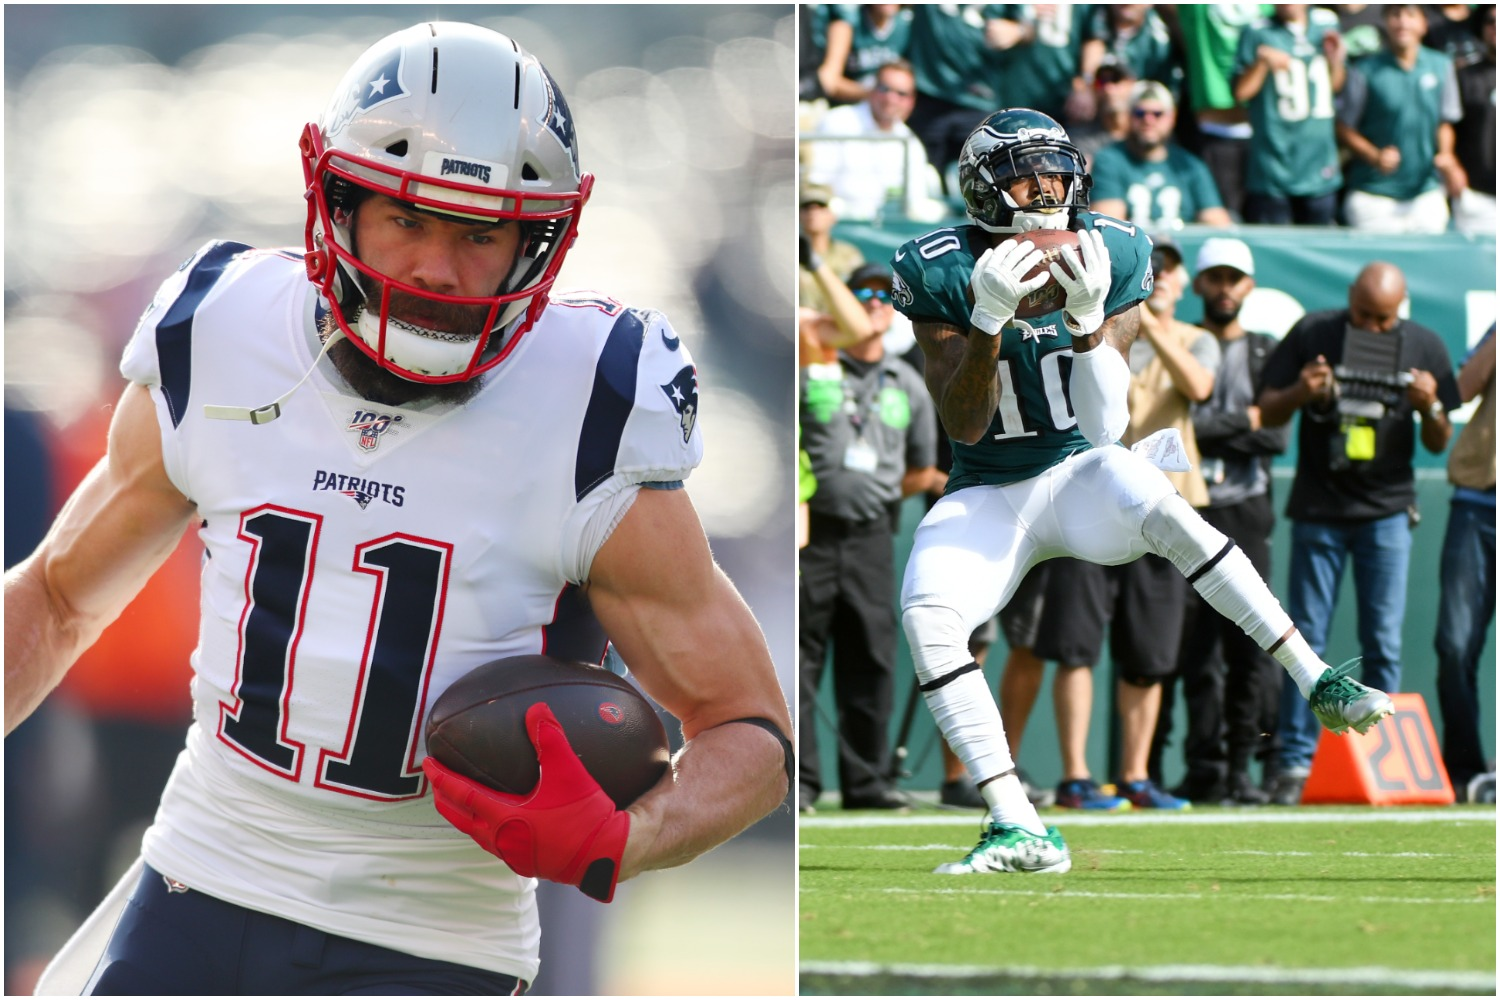 Julian Edelman and DeSean Jackson can learn a lot about each other if they meet up for burgers and uncomfortable conversations like Edelman proposed.